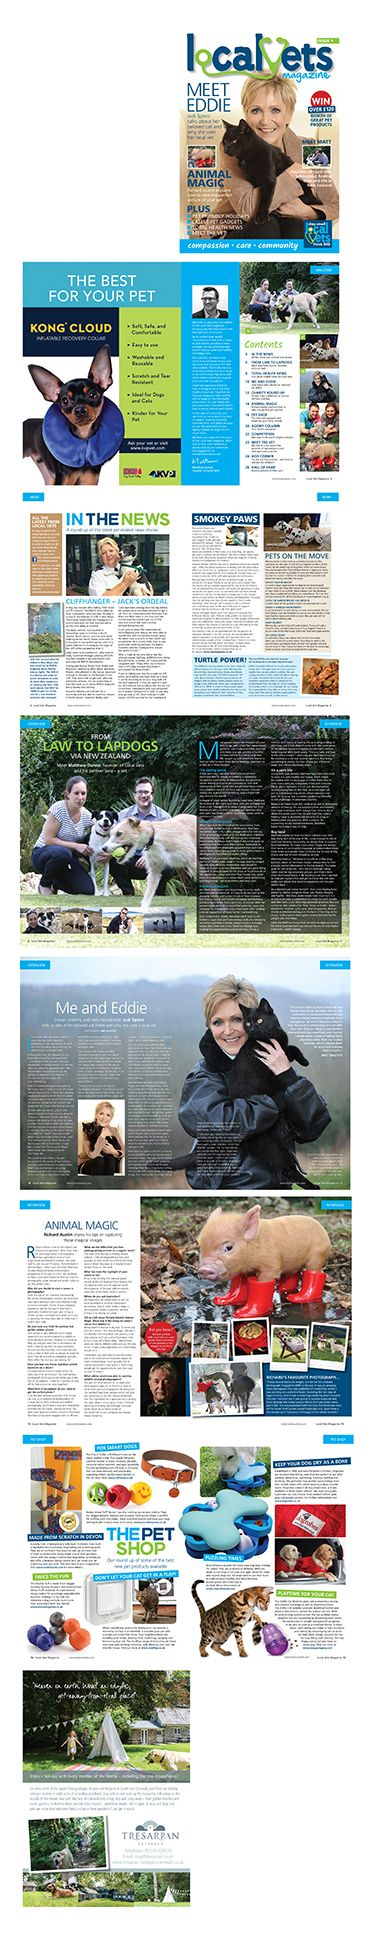 A selection of pages from the 28 page magazine for client Local Vets #magazinedesign #graphicdesign #publishing #magazinelayout #magazines